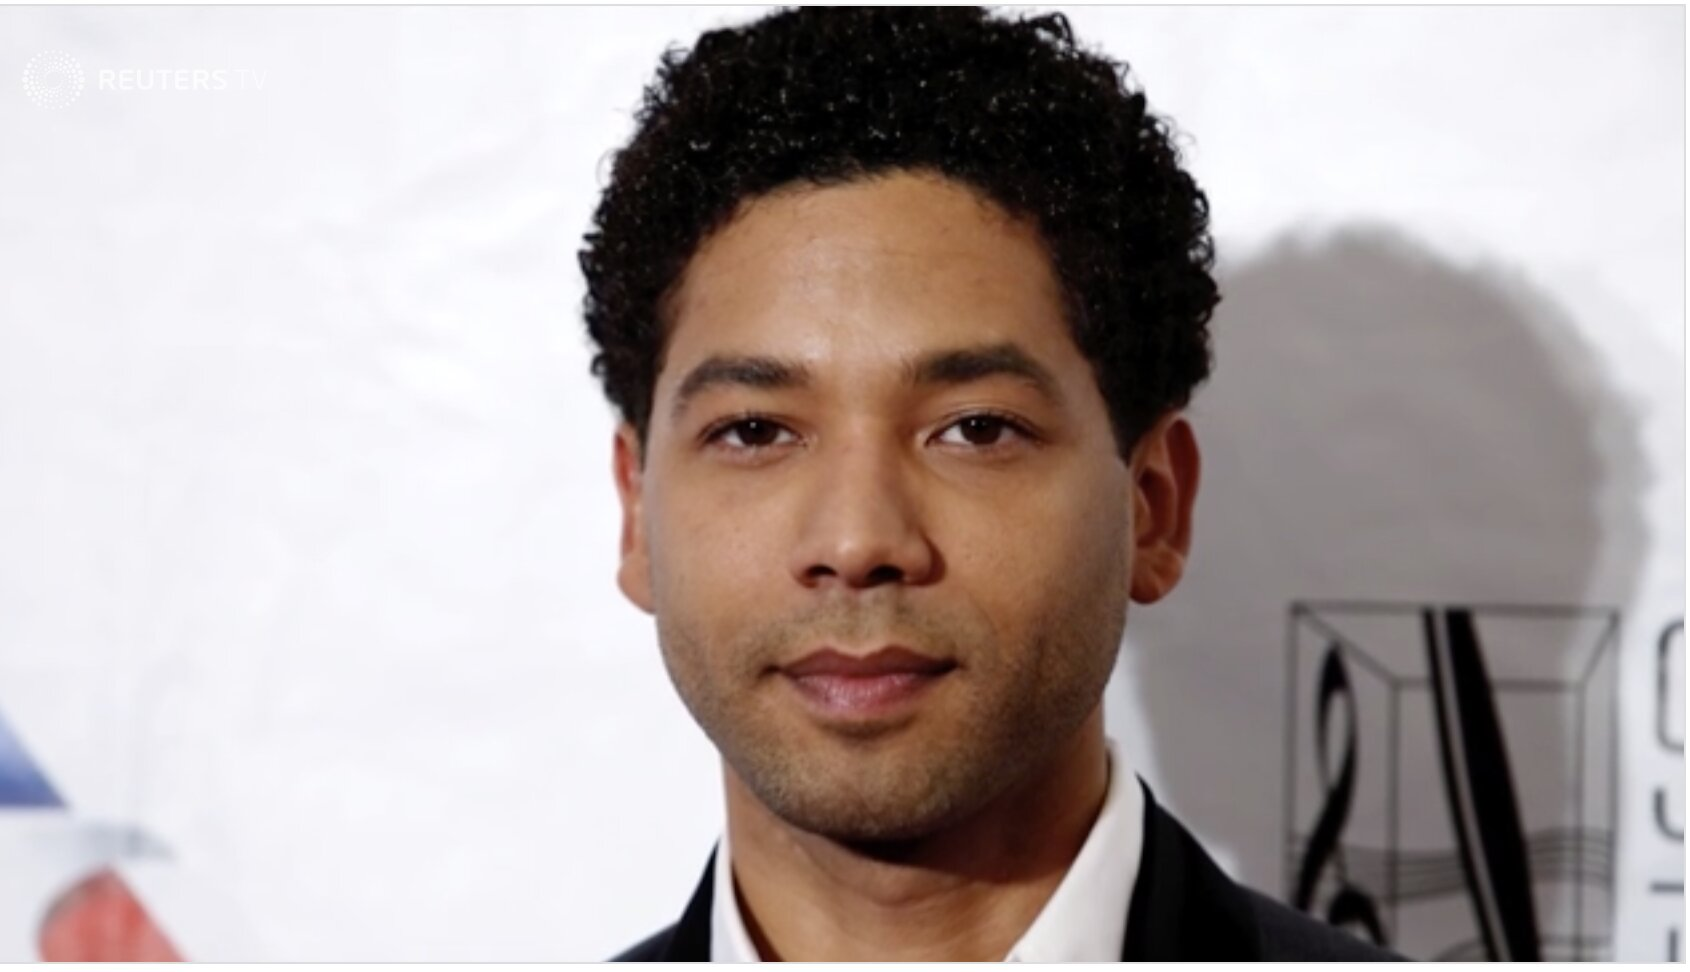 Actor Jussie Smollett staged attack because he was unhappy with salary: police